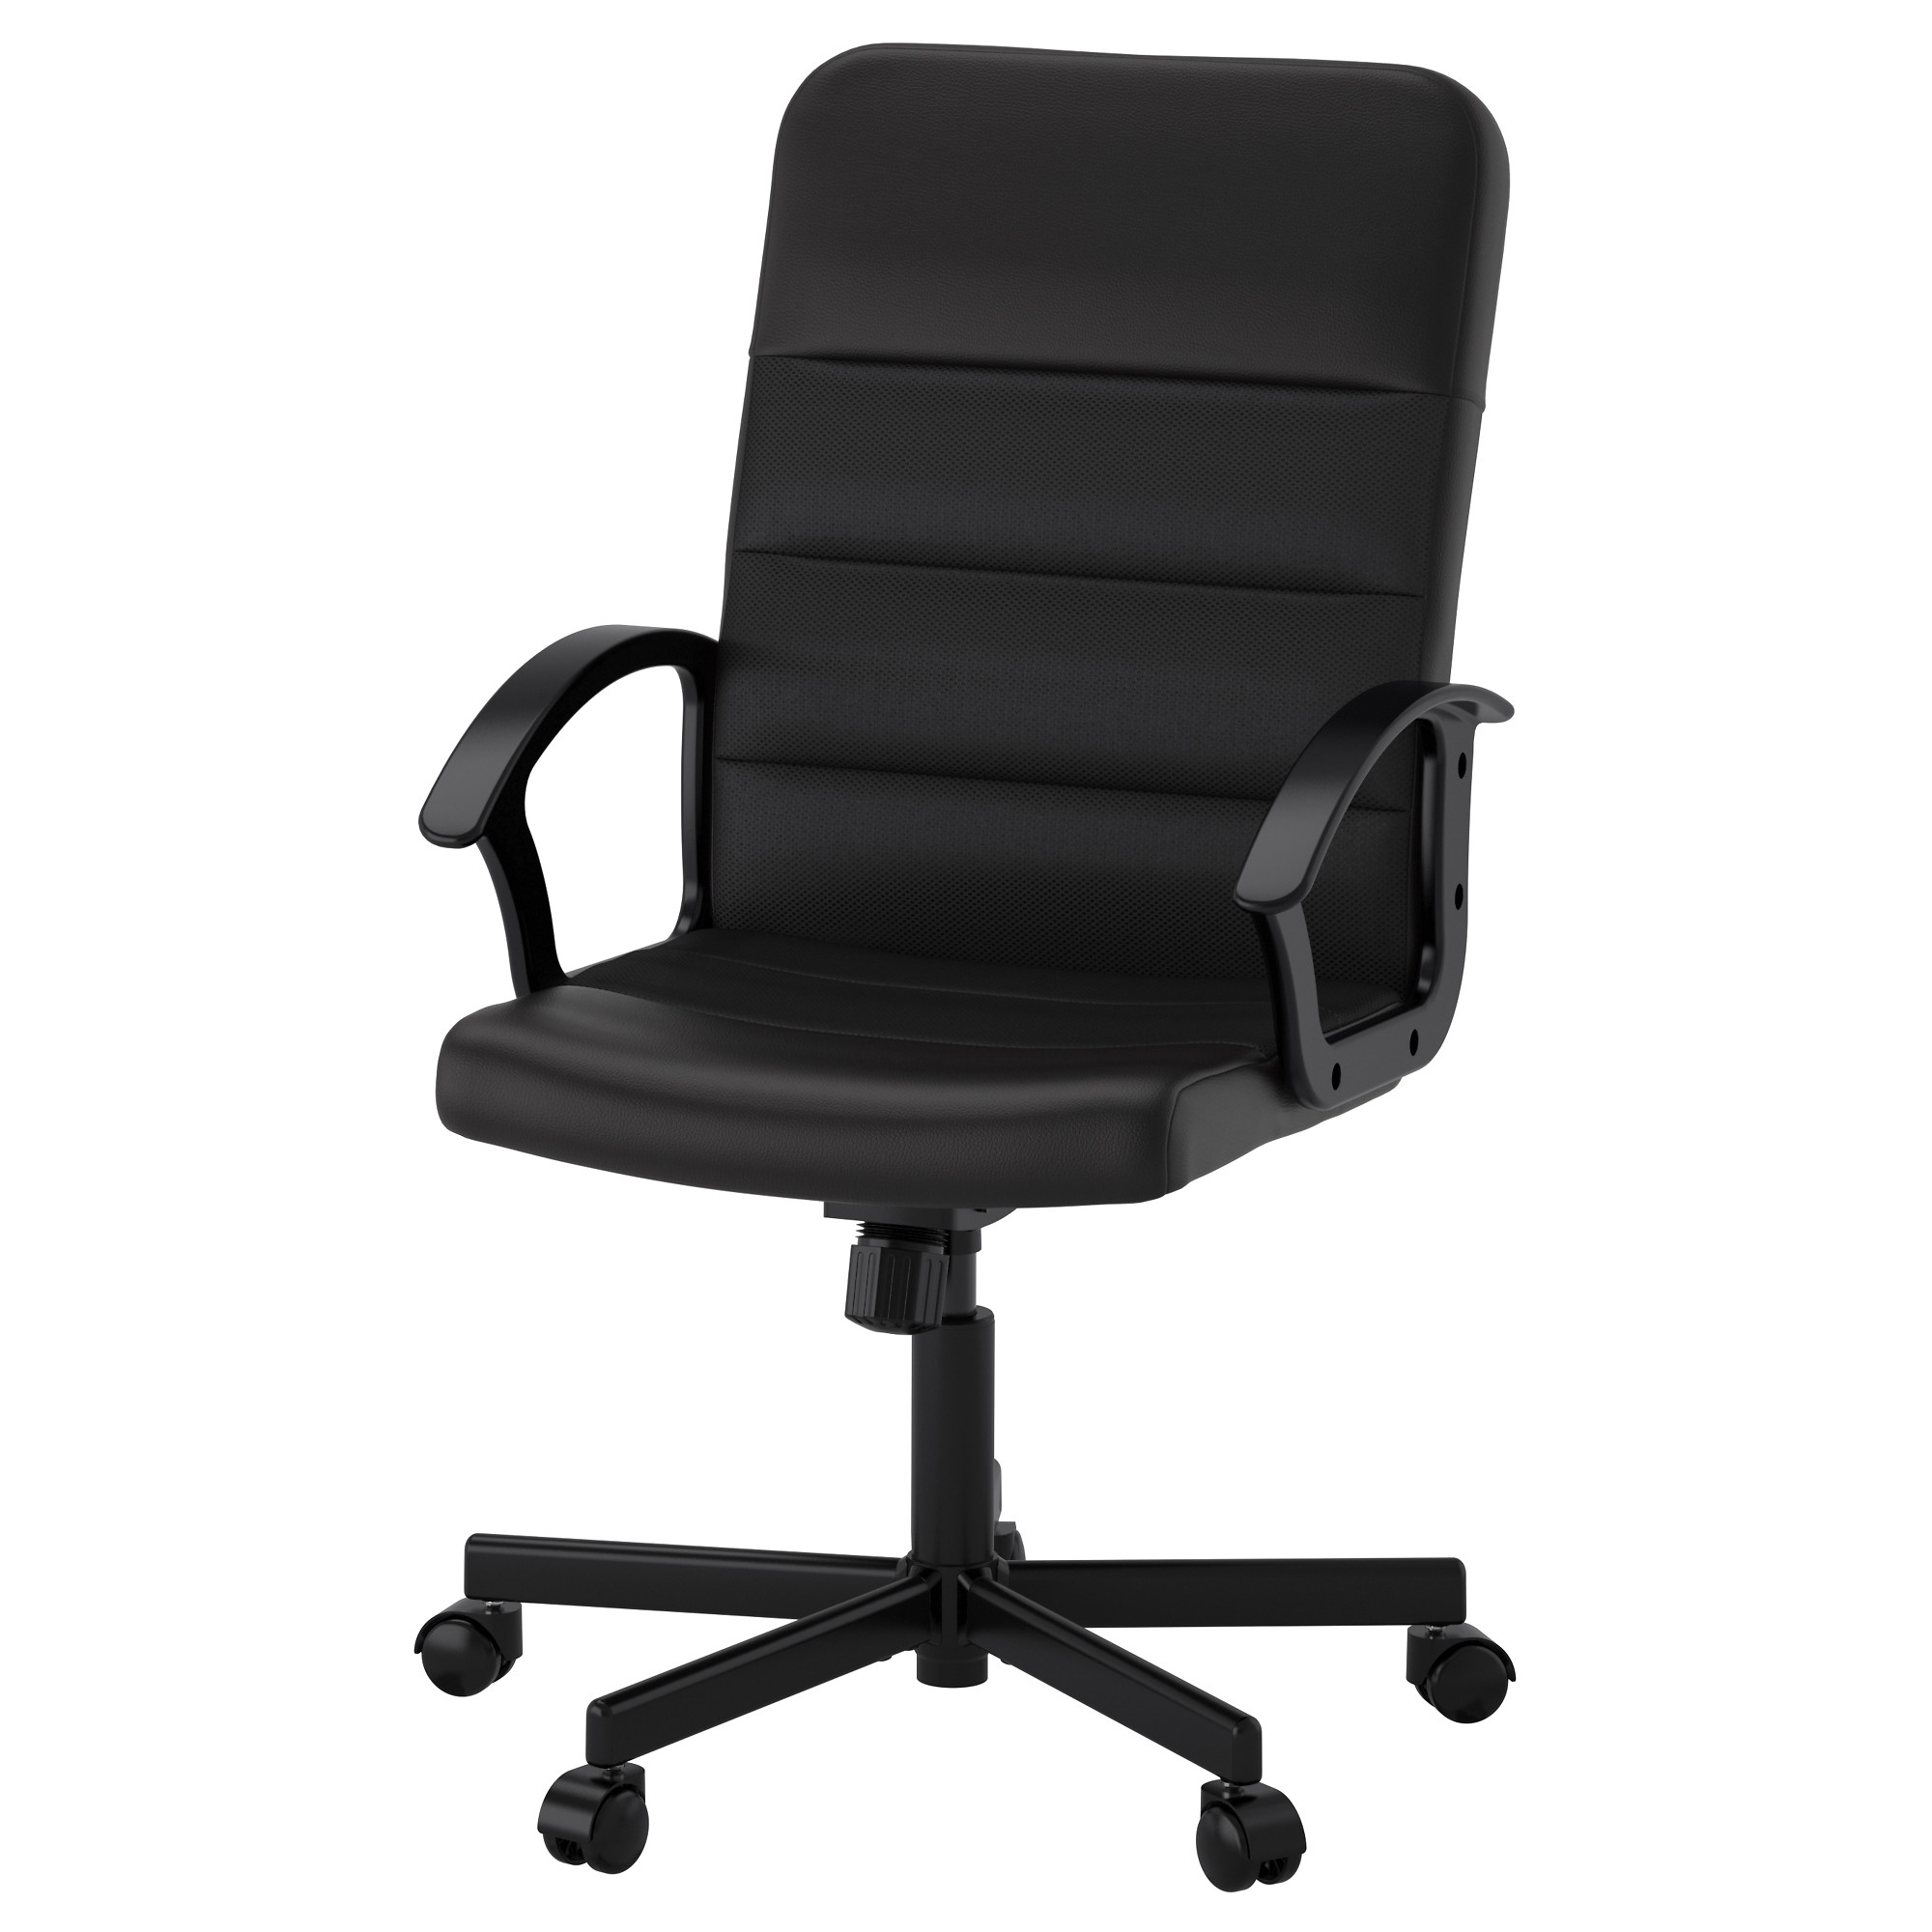 ikea office chairs canada. 2018-04-29t05:00-07:00 ikea office chairs canada e